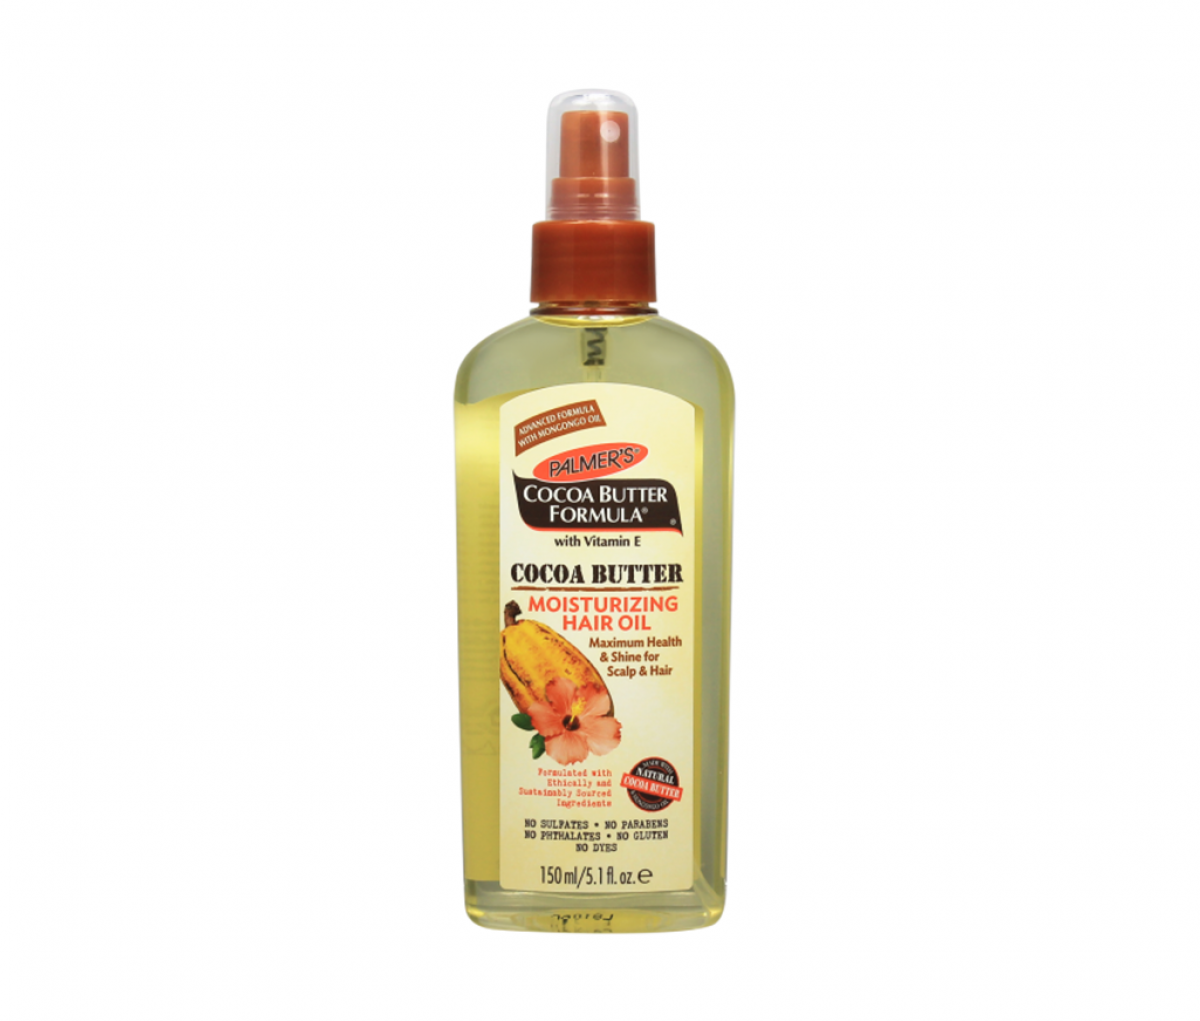 Palmers cocoa butter formula hair oil